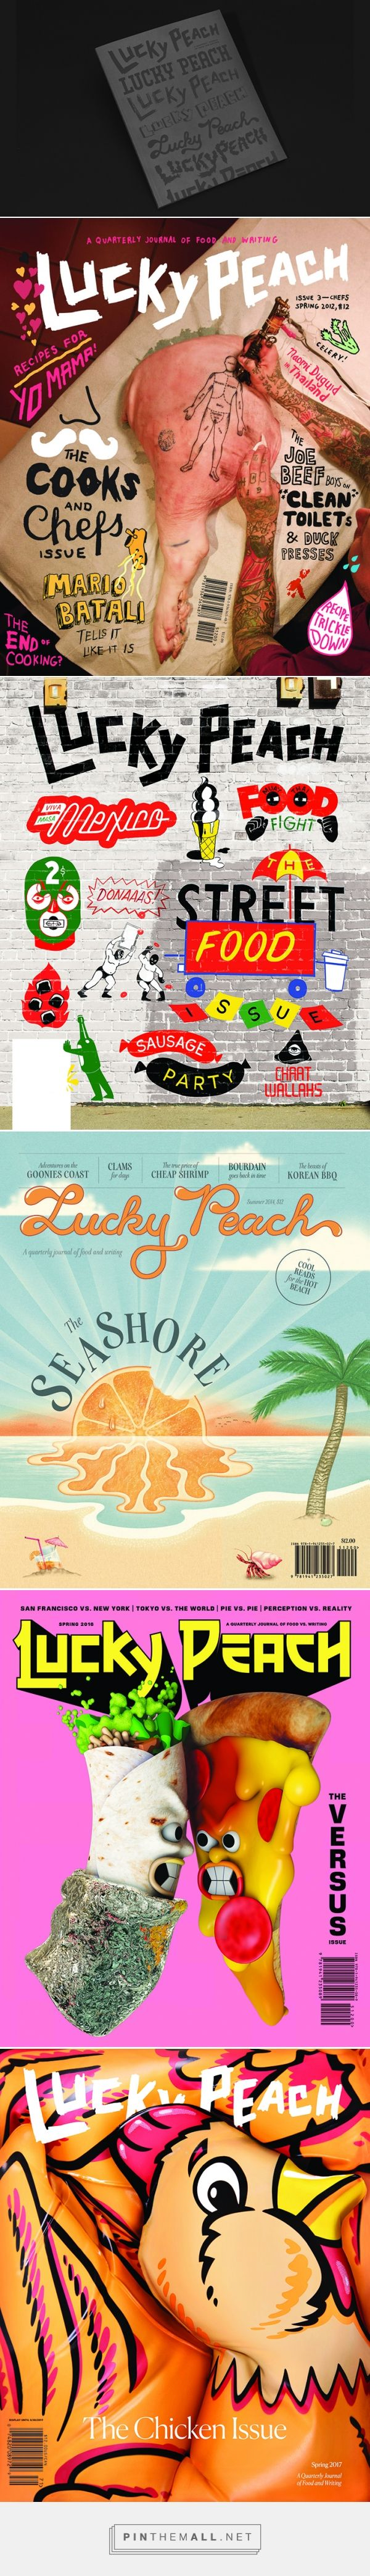 "It's Nice That | Lucky Peach comes to an end with a jam-packed ""best of"" final issue - created via https://pinthemall.net"